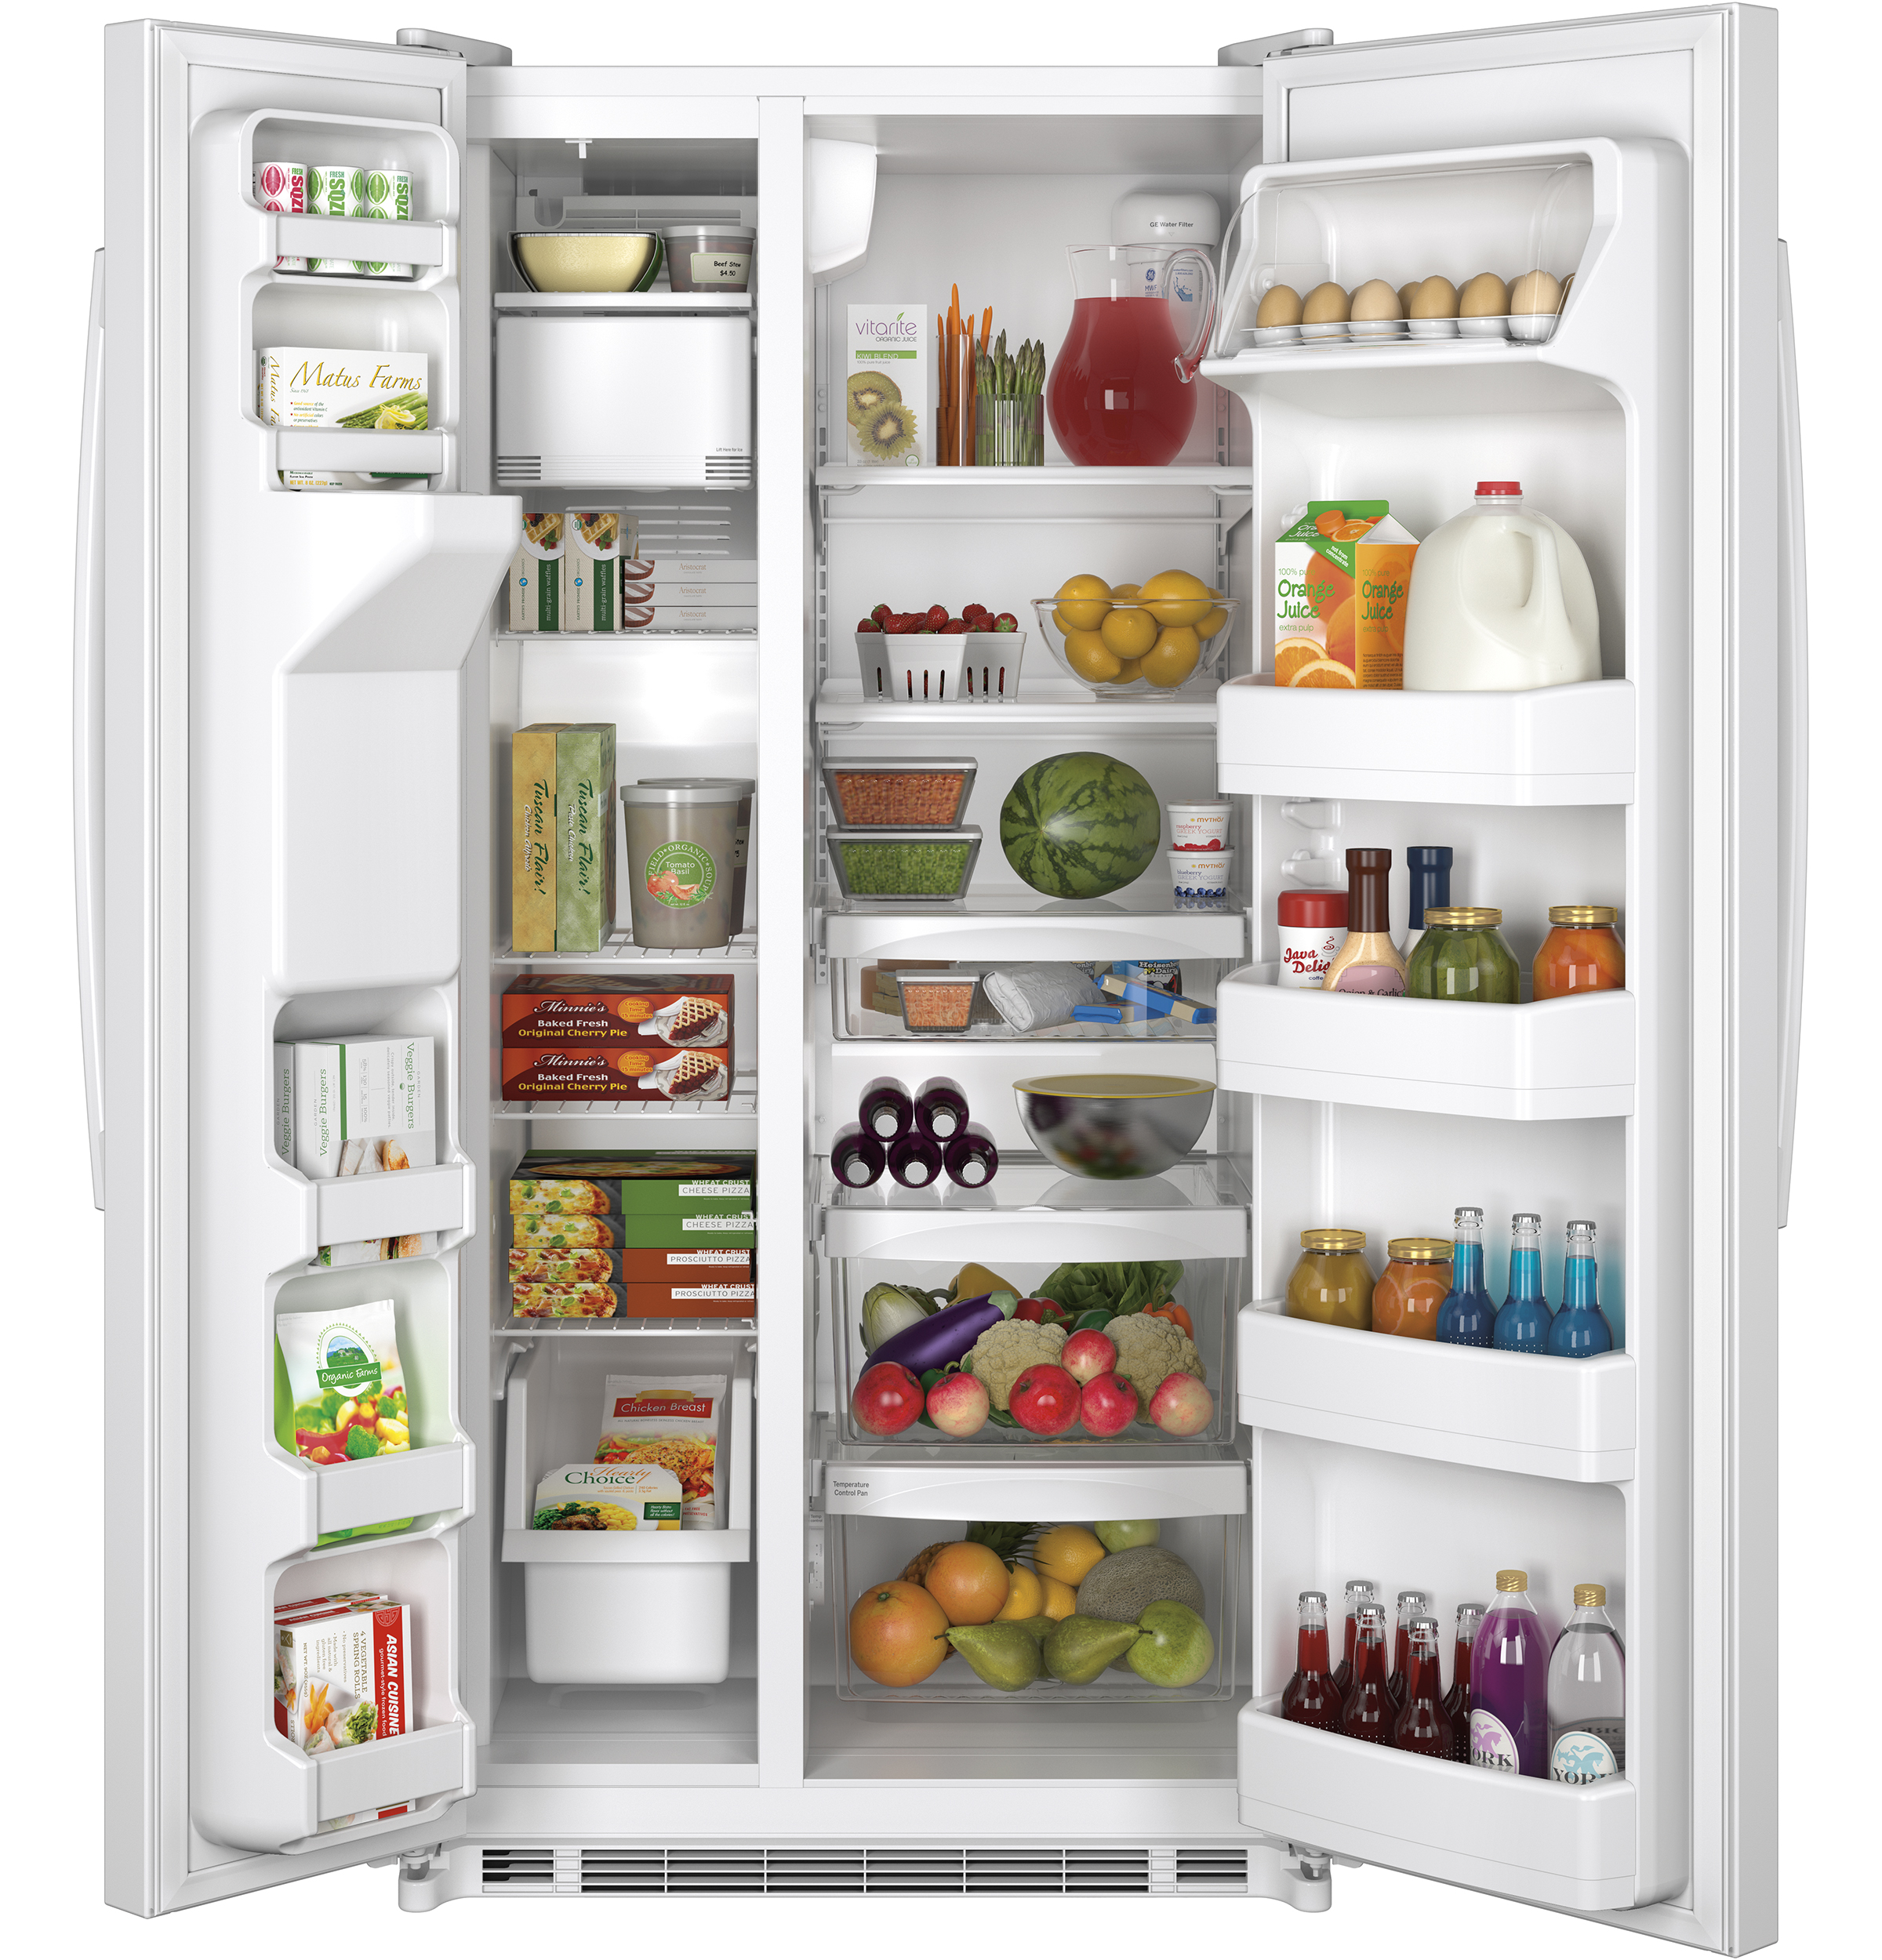 GE Appliances GSE22ETHWW 21.8 cu. ft. Side-by-Side Refrigerator - White